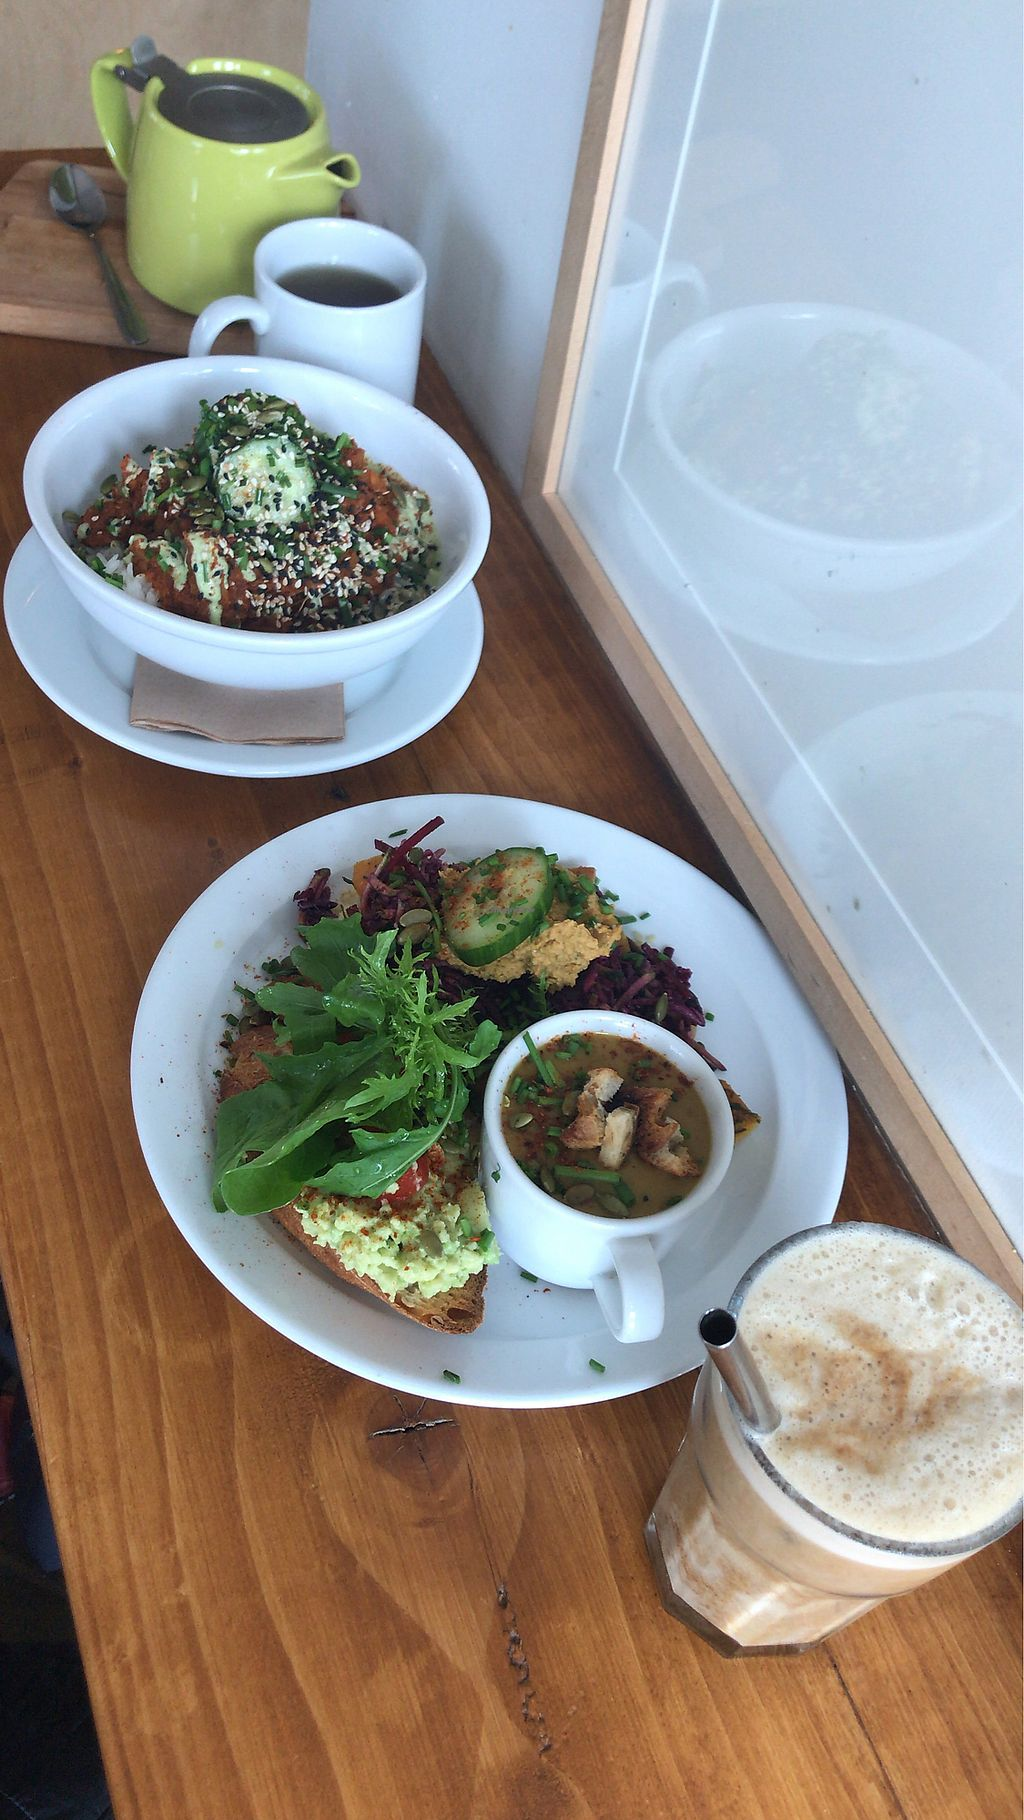 "Photo of Sweet Beat Cafe  by <a href=""/members/profile/OrlaDonnelly"">OrlaDonnelly</a> <br/>Red lentil daal and 3-in-1 super salad, soup and avo toast with peppermint tea and iced coffee <br/> May 15, 2018  - <a href='/contact/abuse/image/67016/400192'>Report</a>"